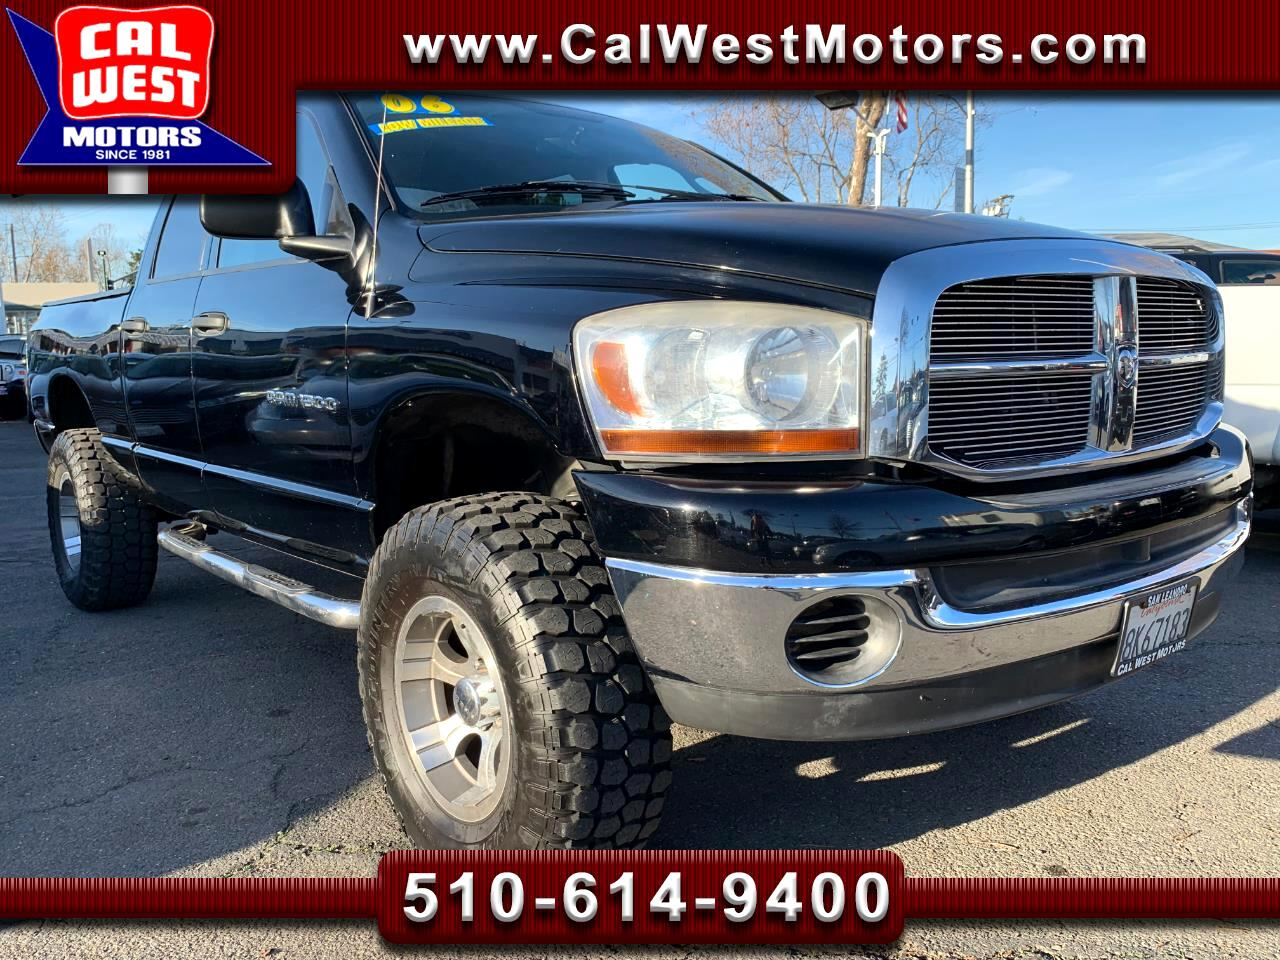 2006 Dodge Ram 1500 SLT Quad Cab Lifted LowMiles VeryClean WellMntnd